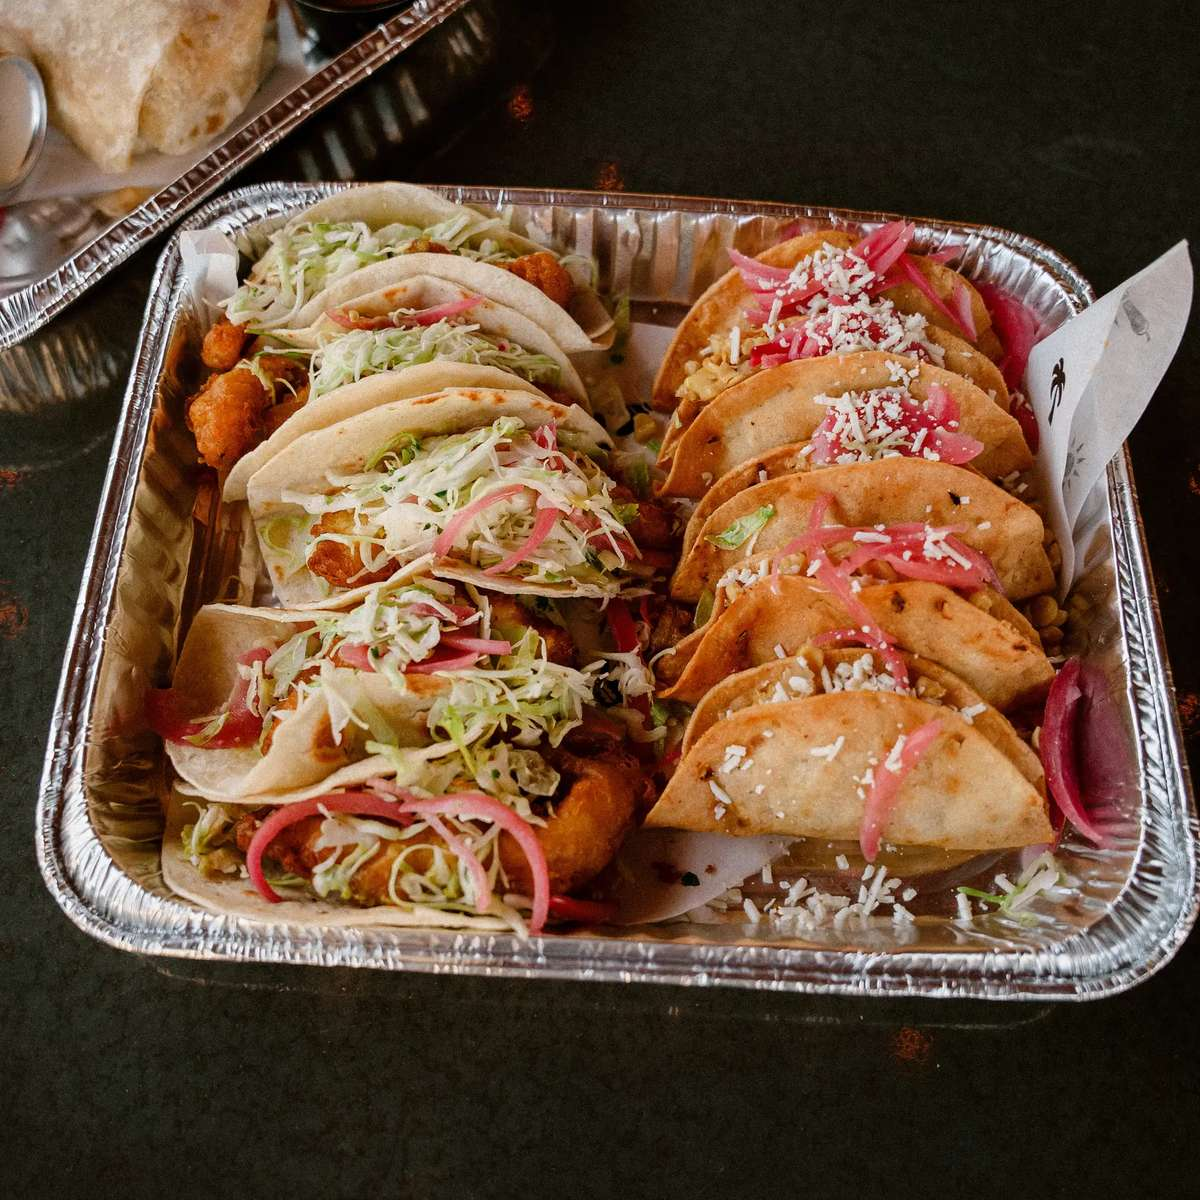 BEST MEXICAN TAKEOUT + TO GO FOOD IN SCOTTSDALE